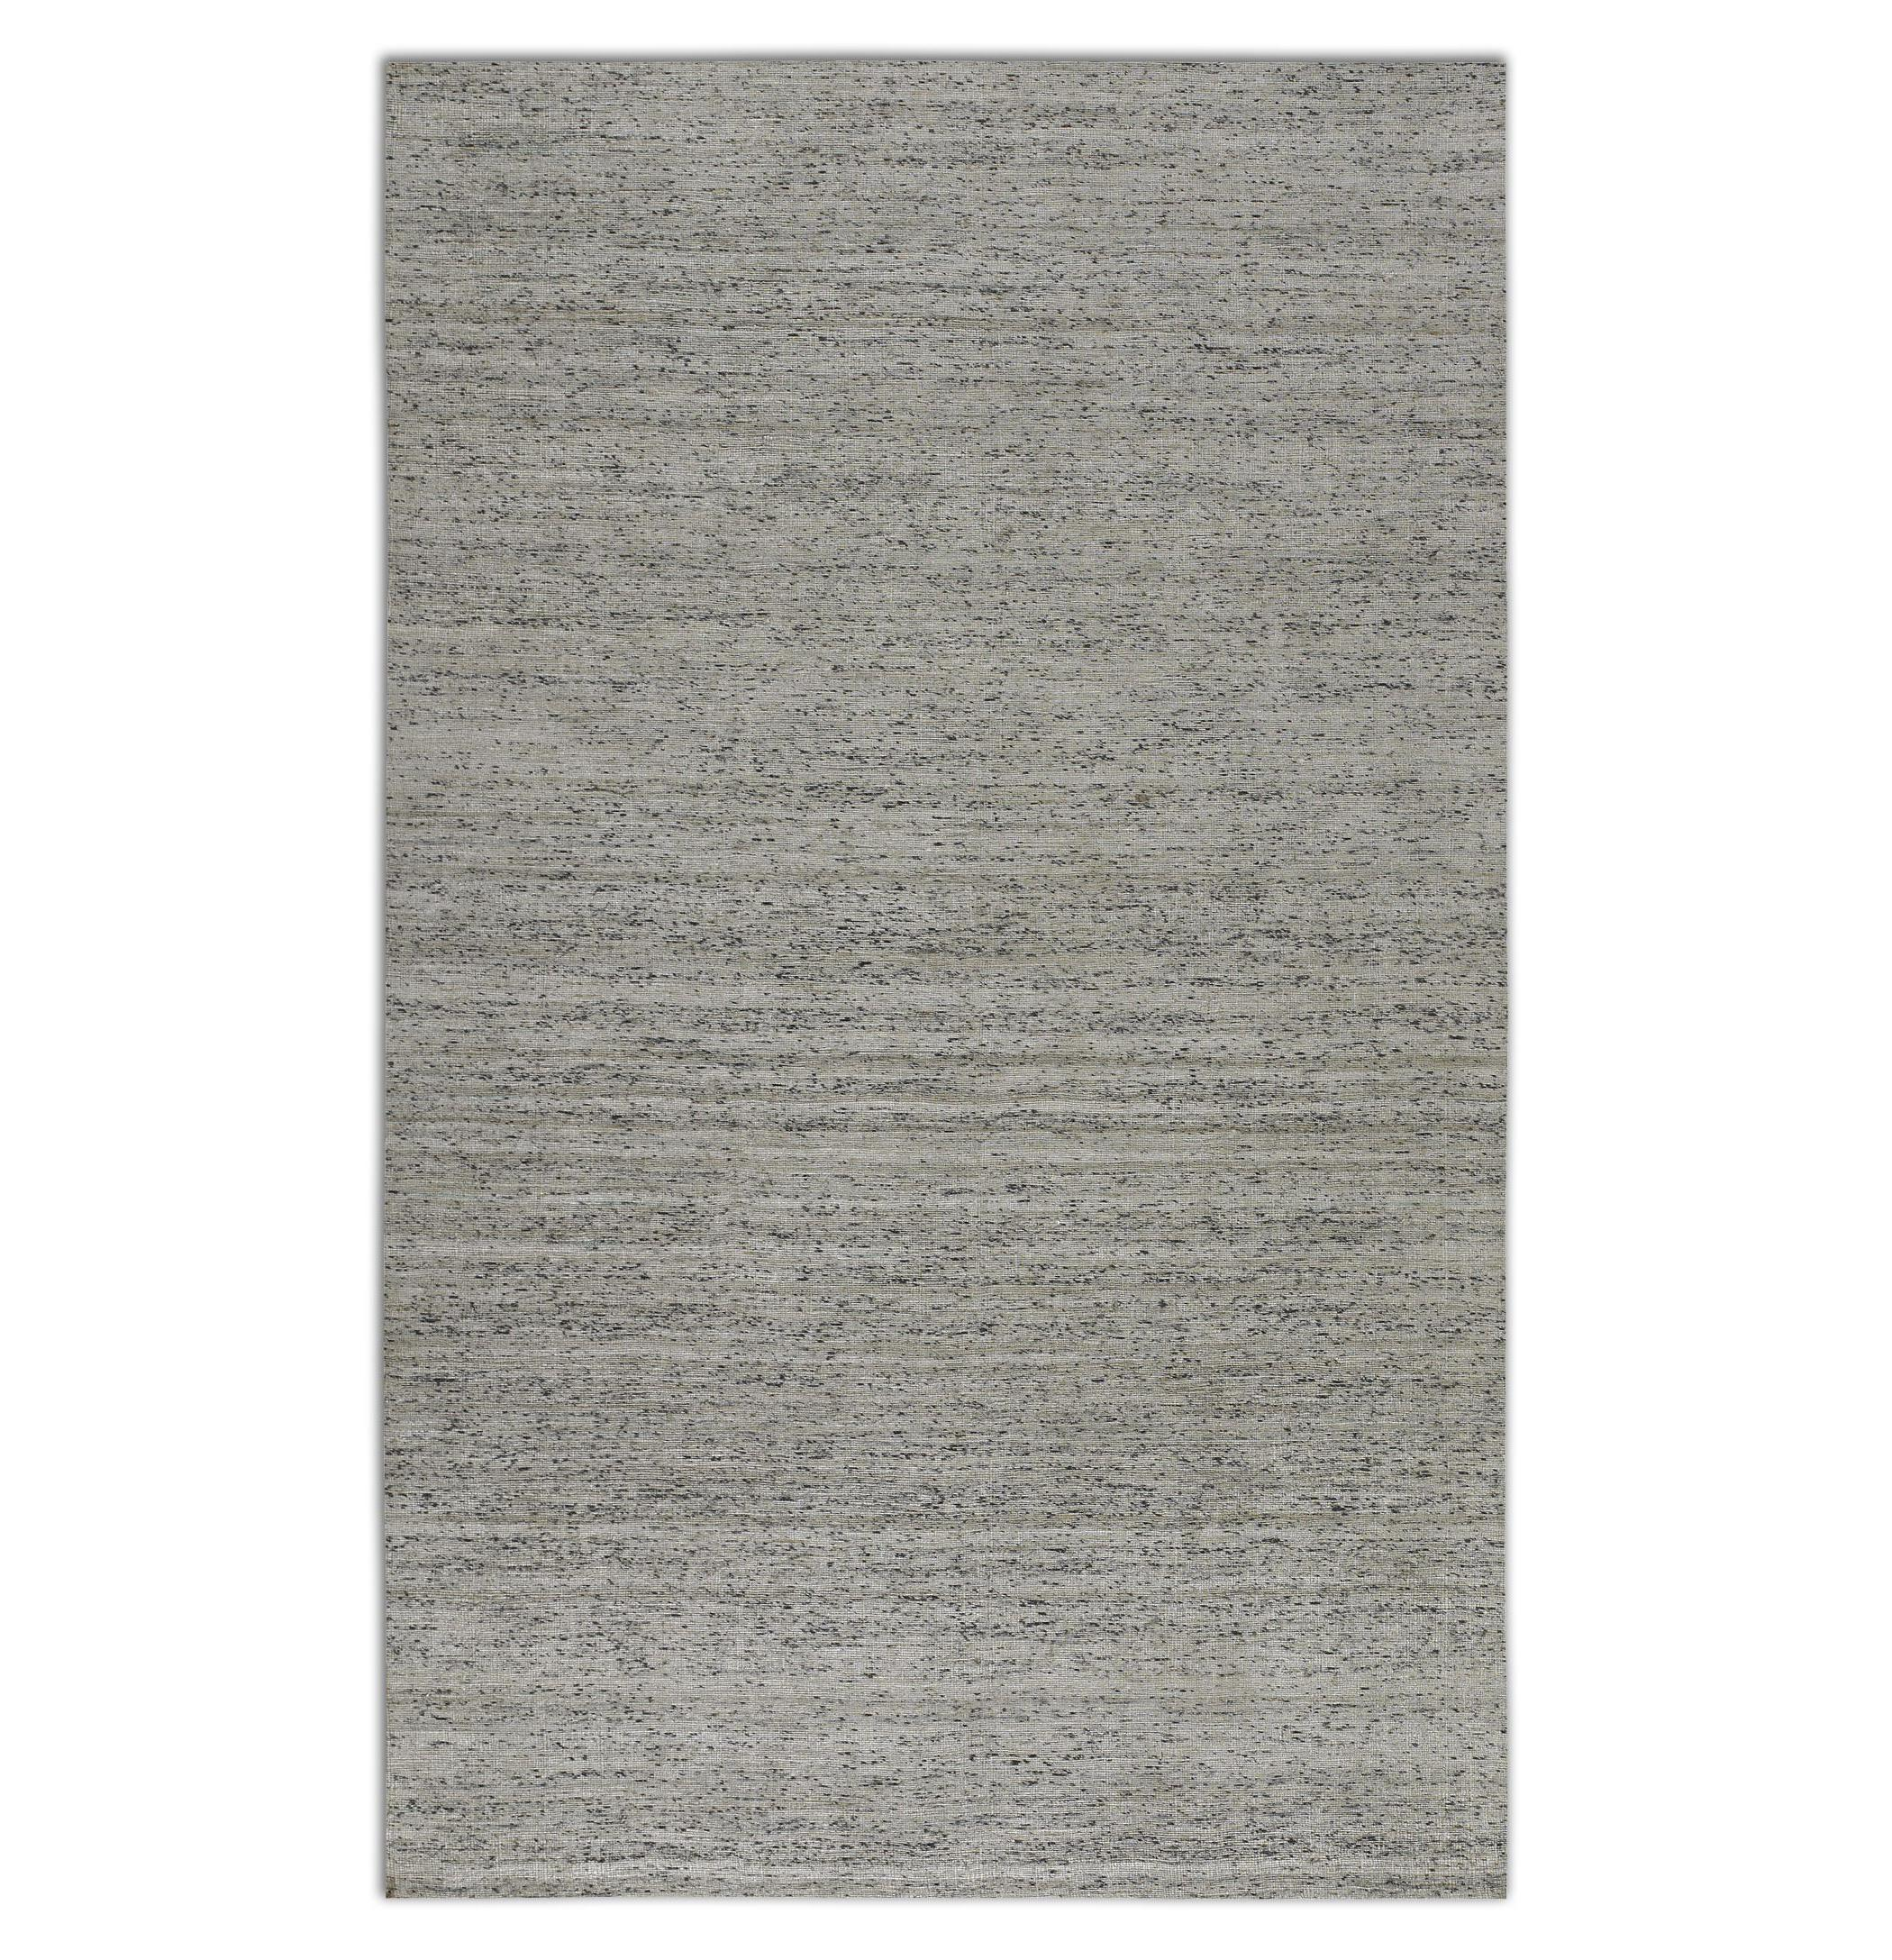 Uttermost Rugs Dacian 9 X 12 Rug - White - Item Number: 73059-9